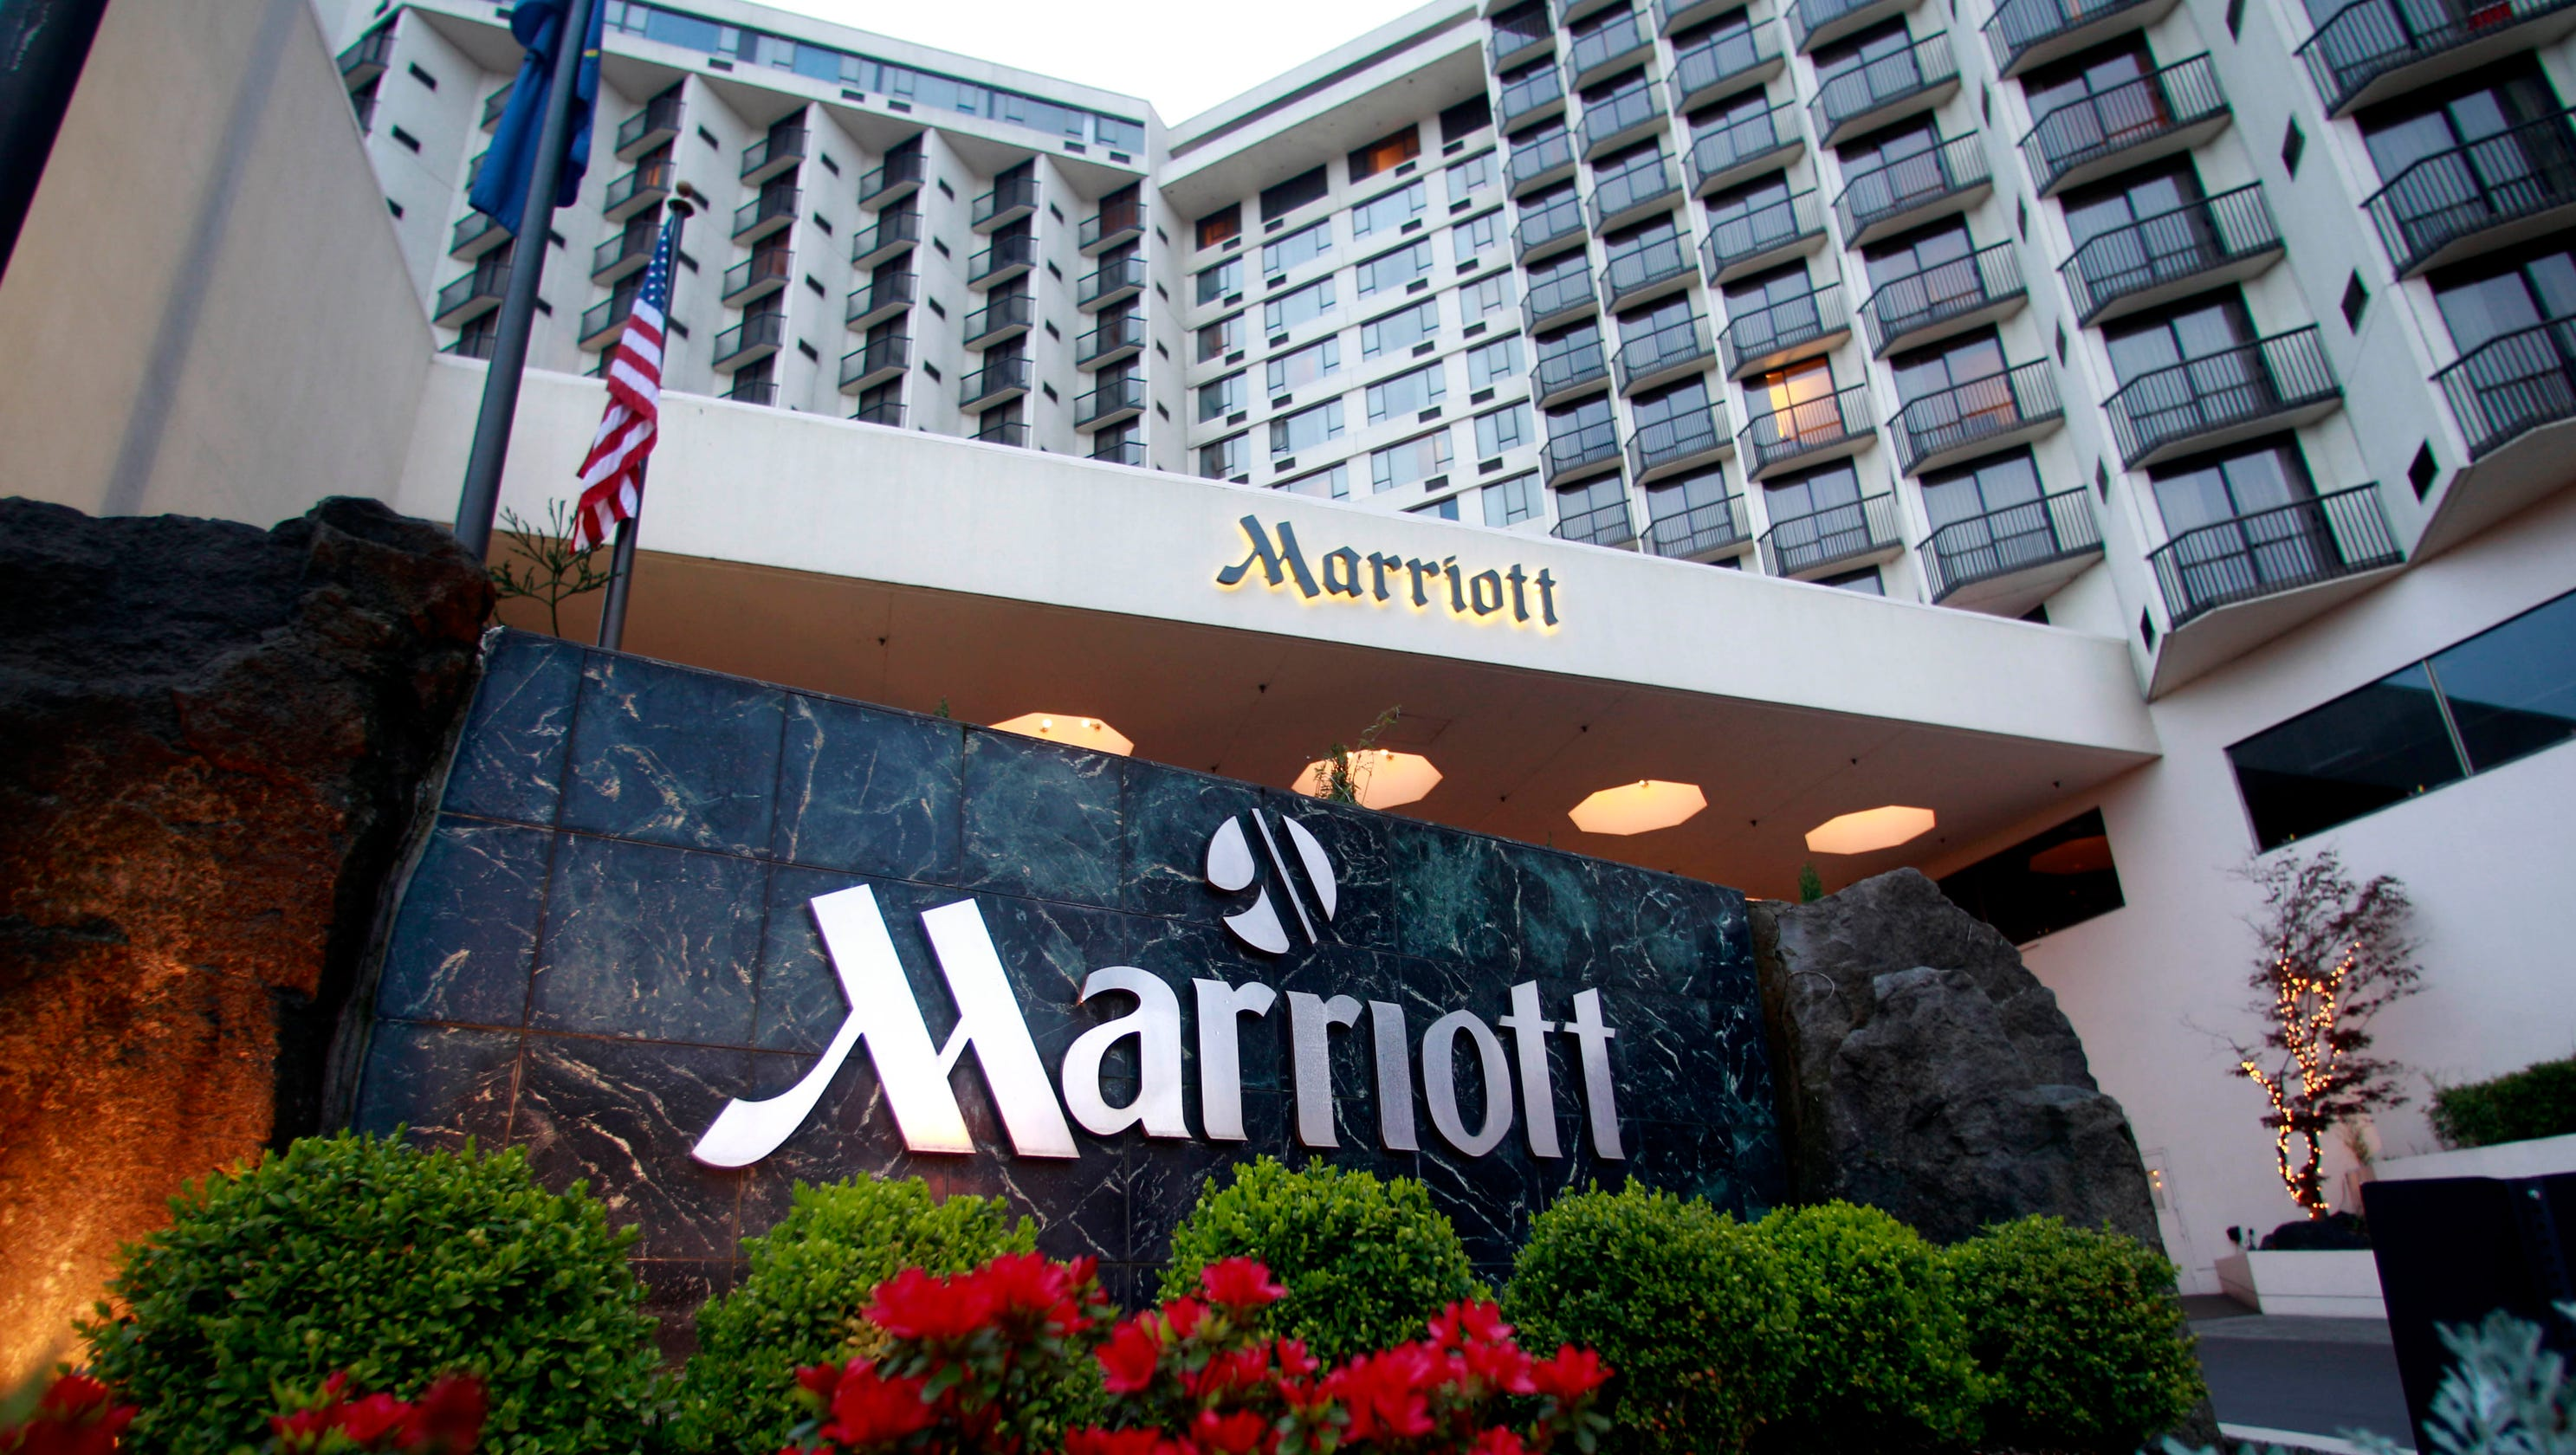 Hotel industry's online anti-competition requires antitrust